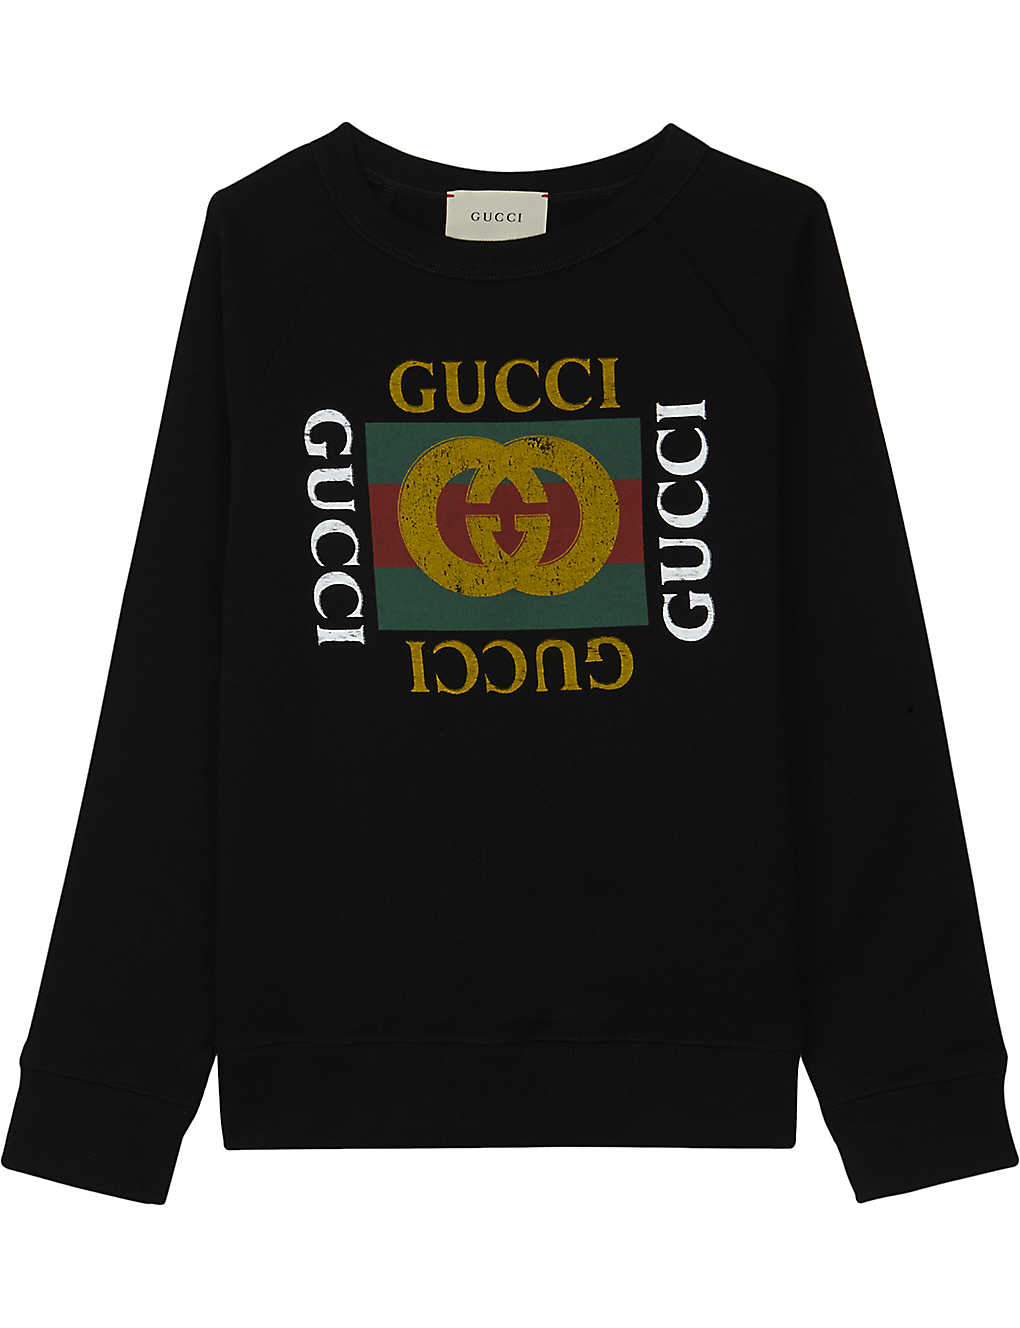 fff987e3dbc GUCCI -  GG  logo cotton sweatshirt 4-12 years